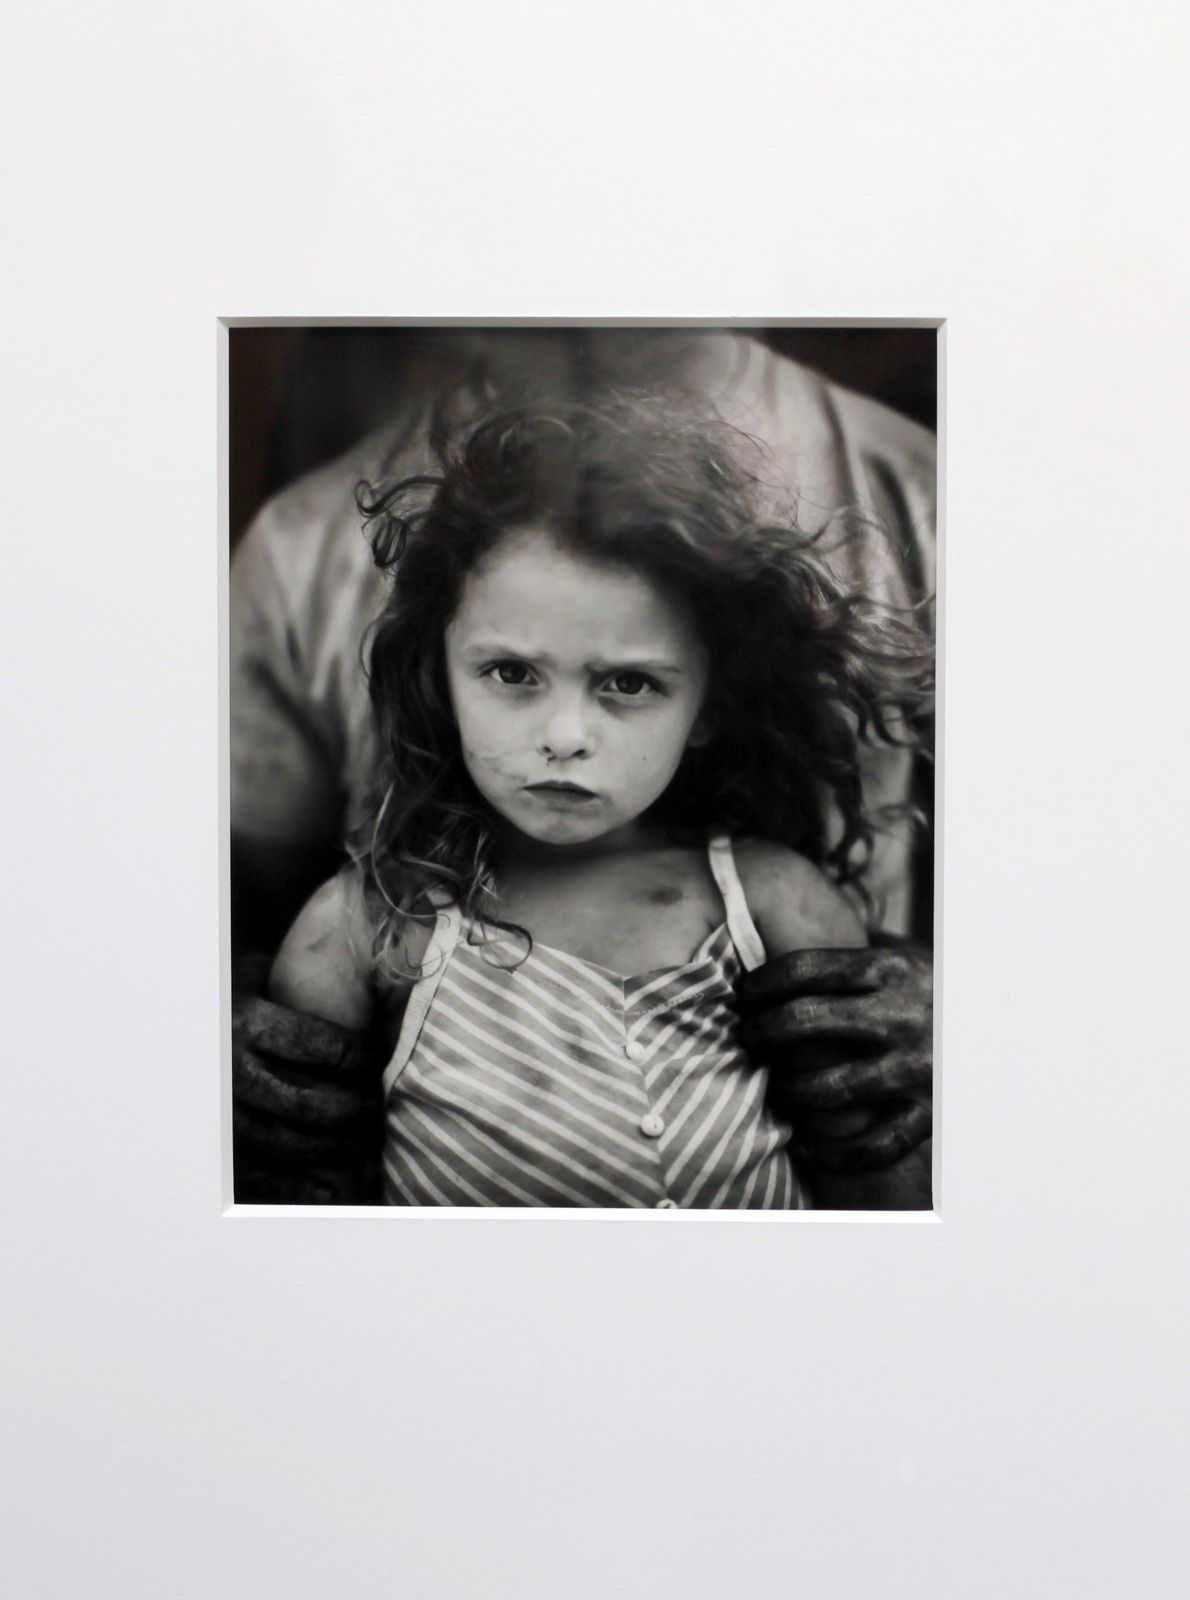 """ Holding Virginia"", 1989 de Sally MANN - Courtesy Stephen Dalter Gallery © Photo Éric Simon"